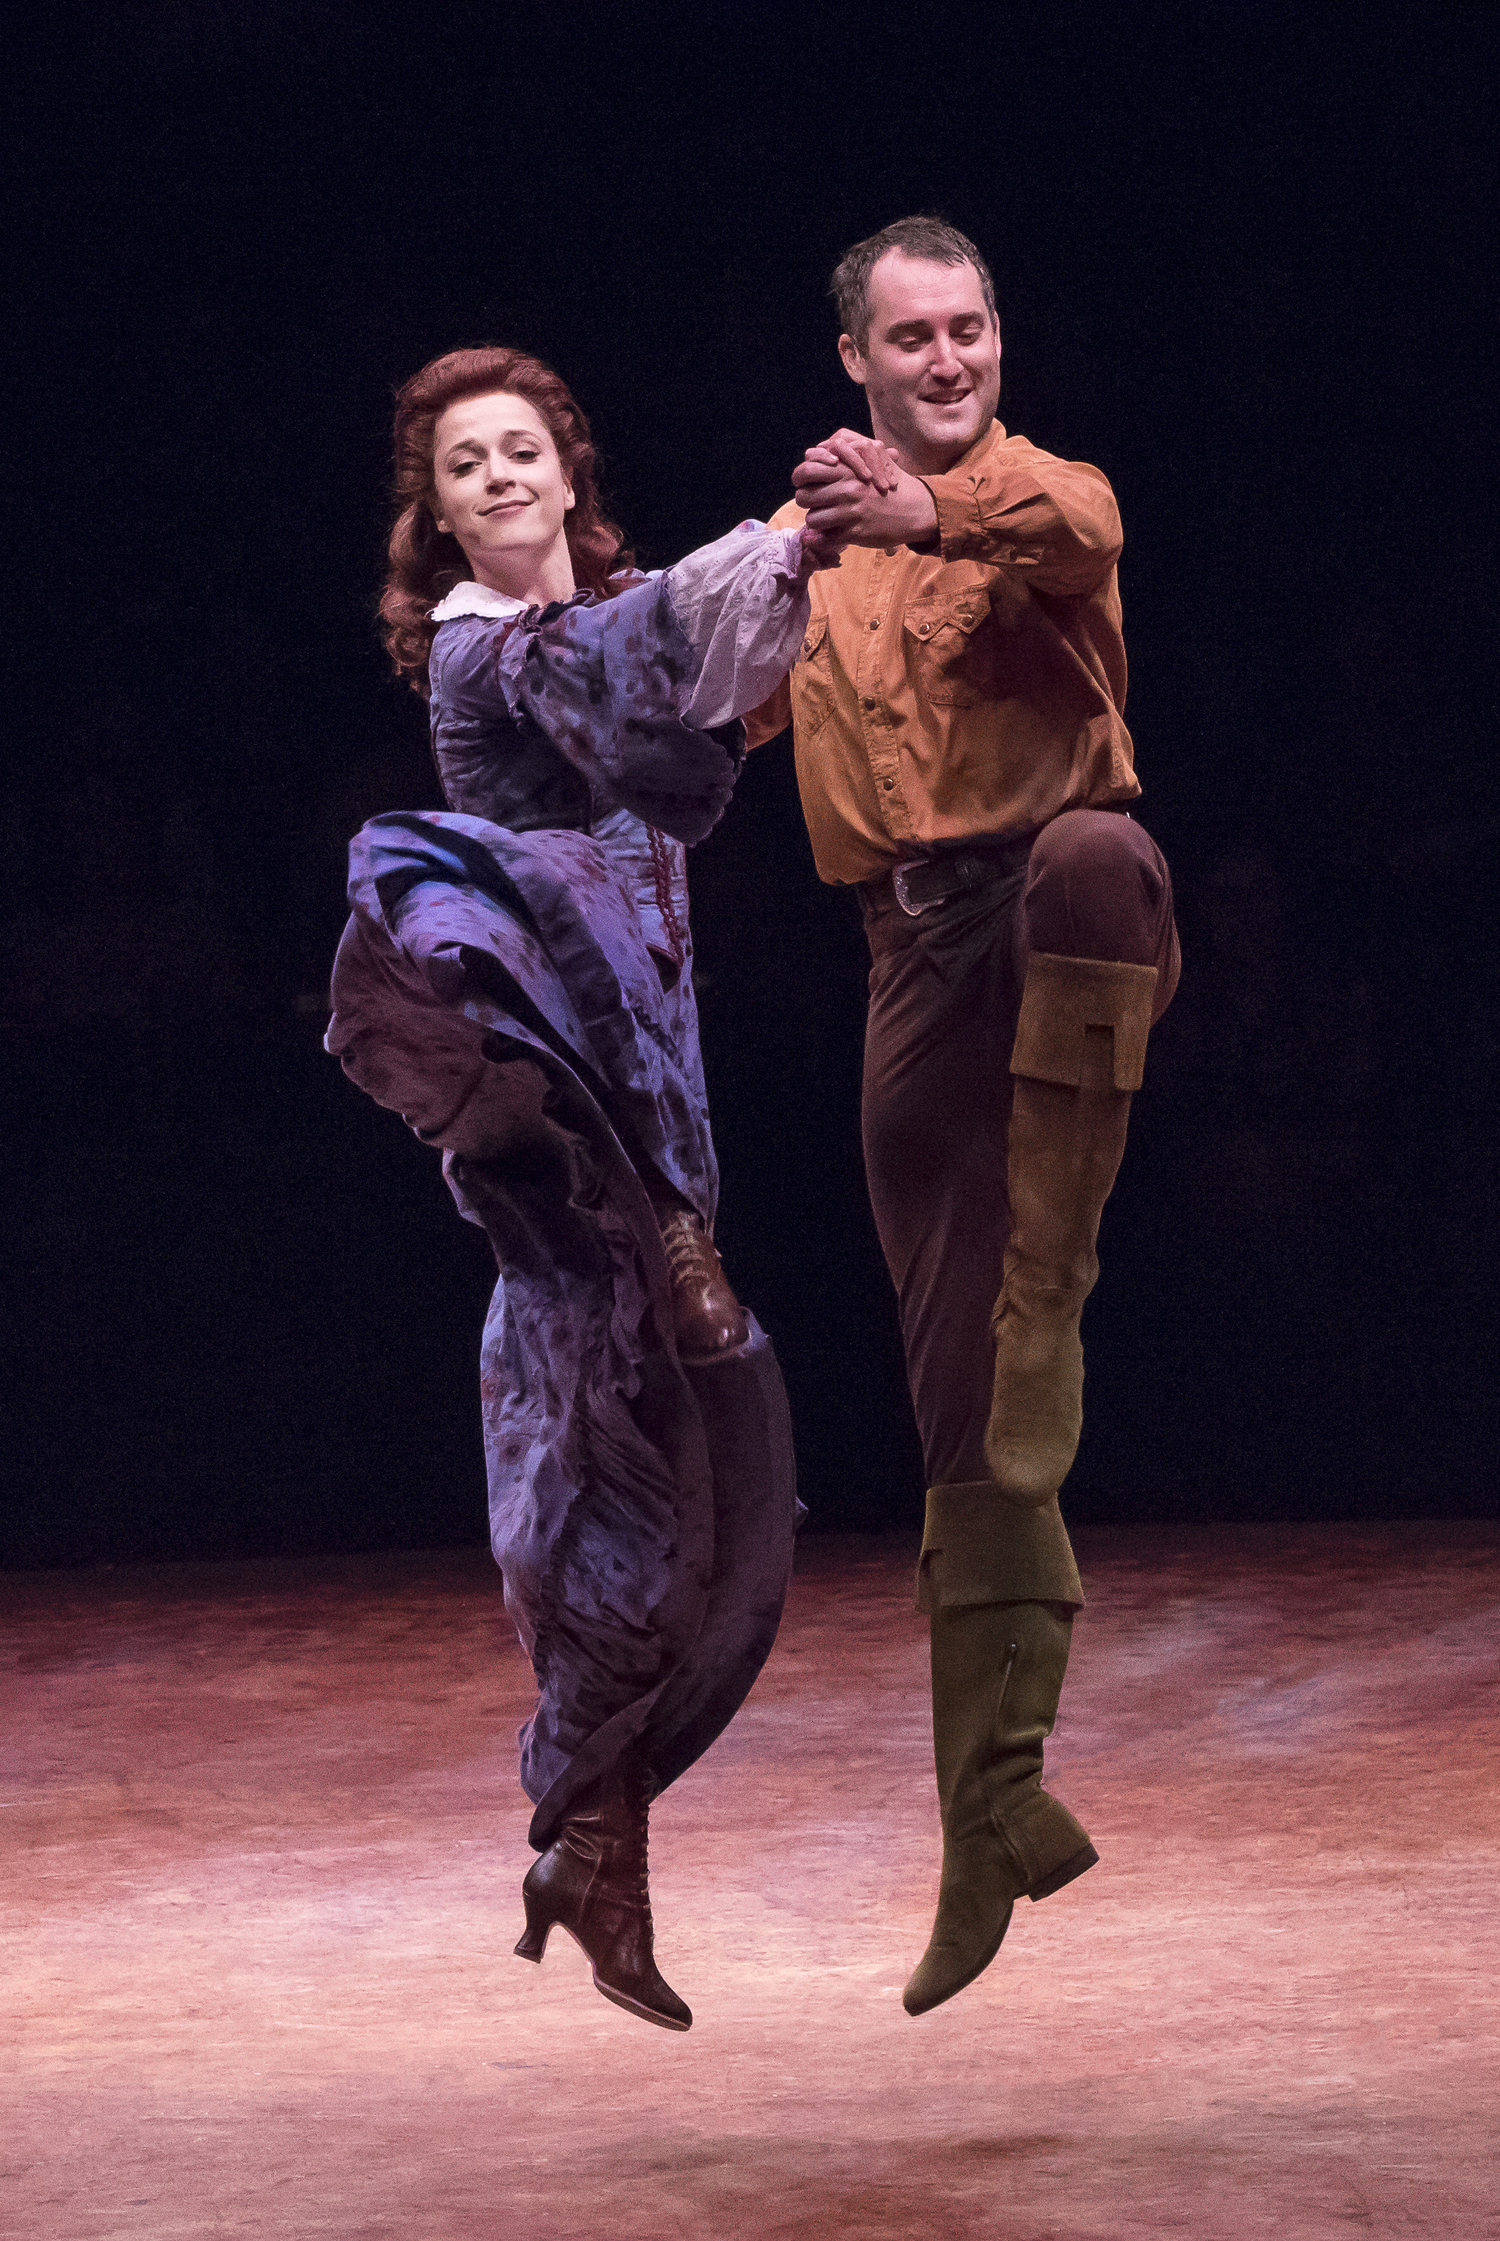 BWW Review: SEVEN BRIDES FOR SEVEN BROTHERS Dazzles at Broadway At Music Circus